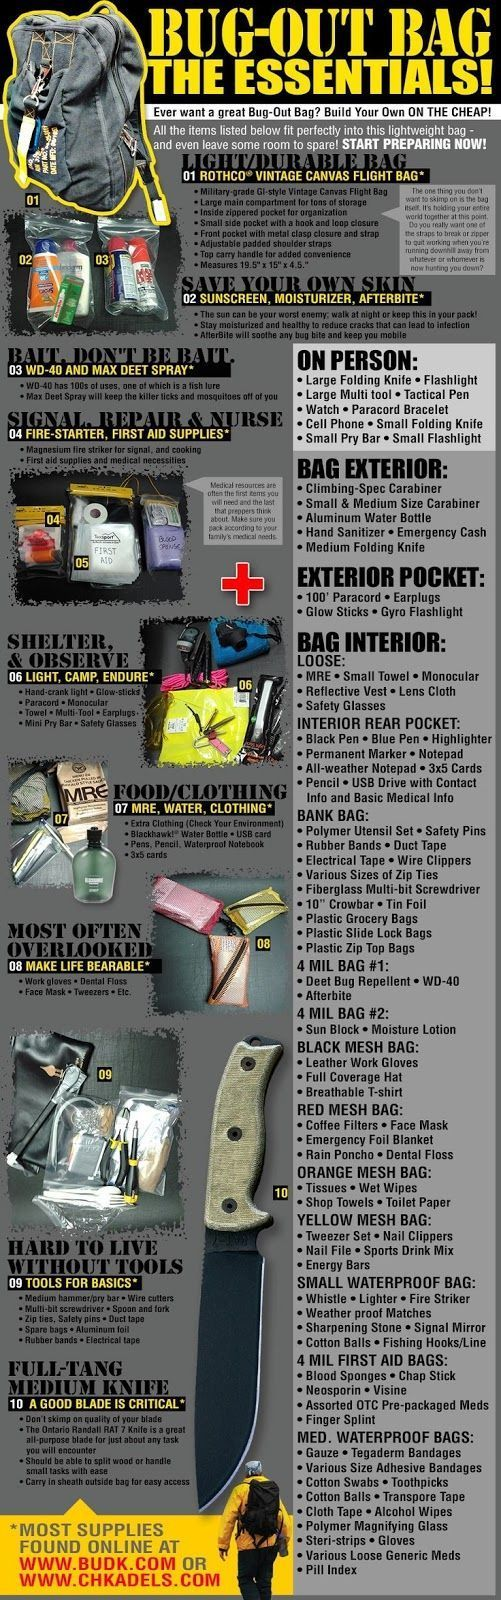 Bug Out Bag - I'm not a prepper, but this kind of bag may be good for an emergency hurricane bag with a few adjustments.